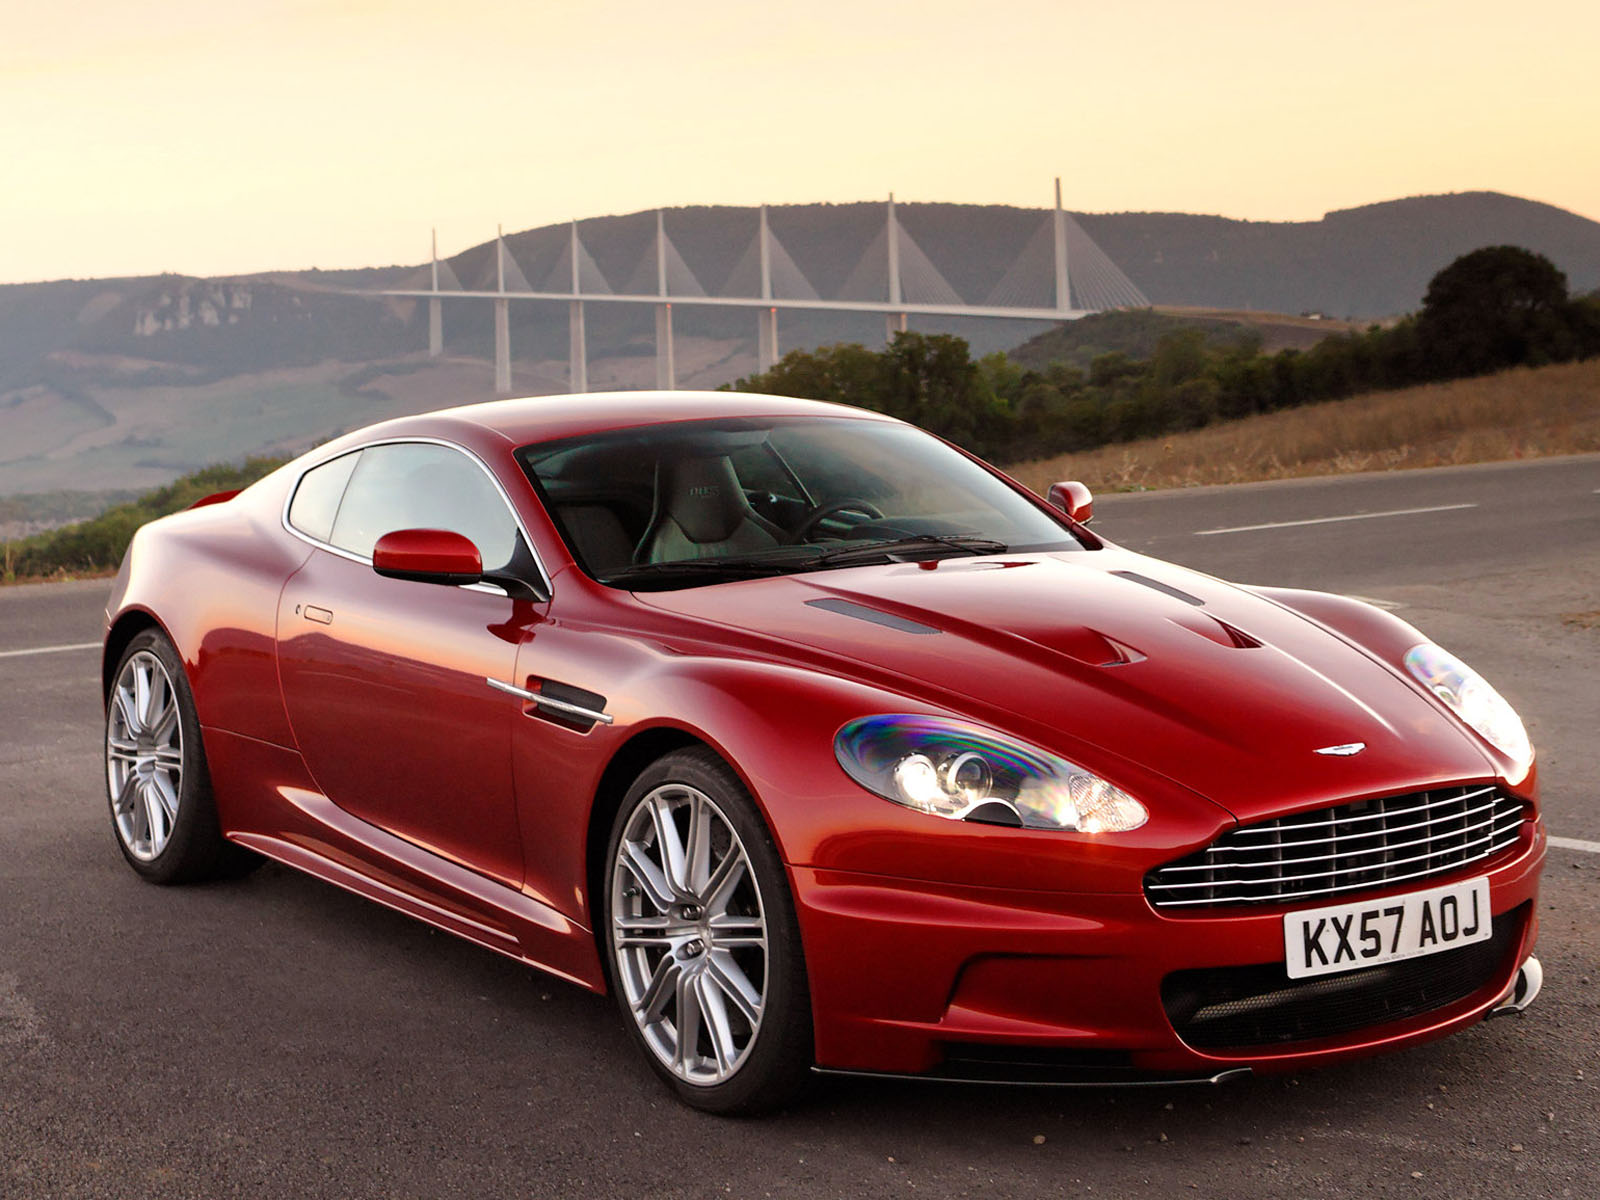 2011 aston martin db9 review | car news and show